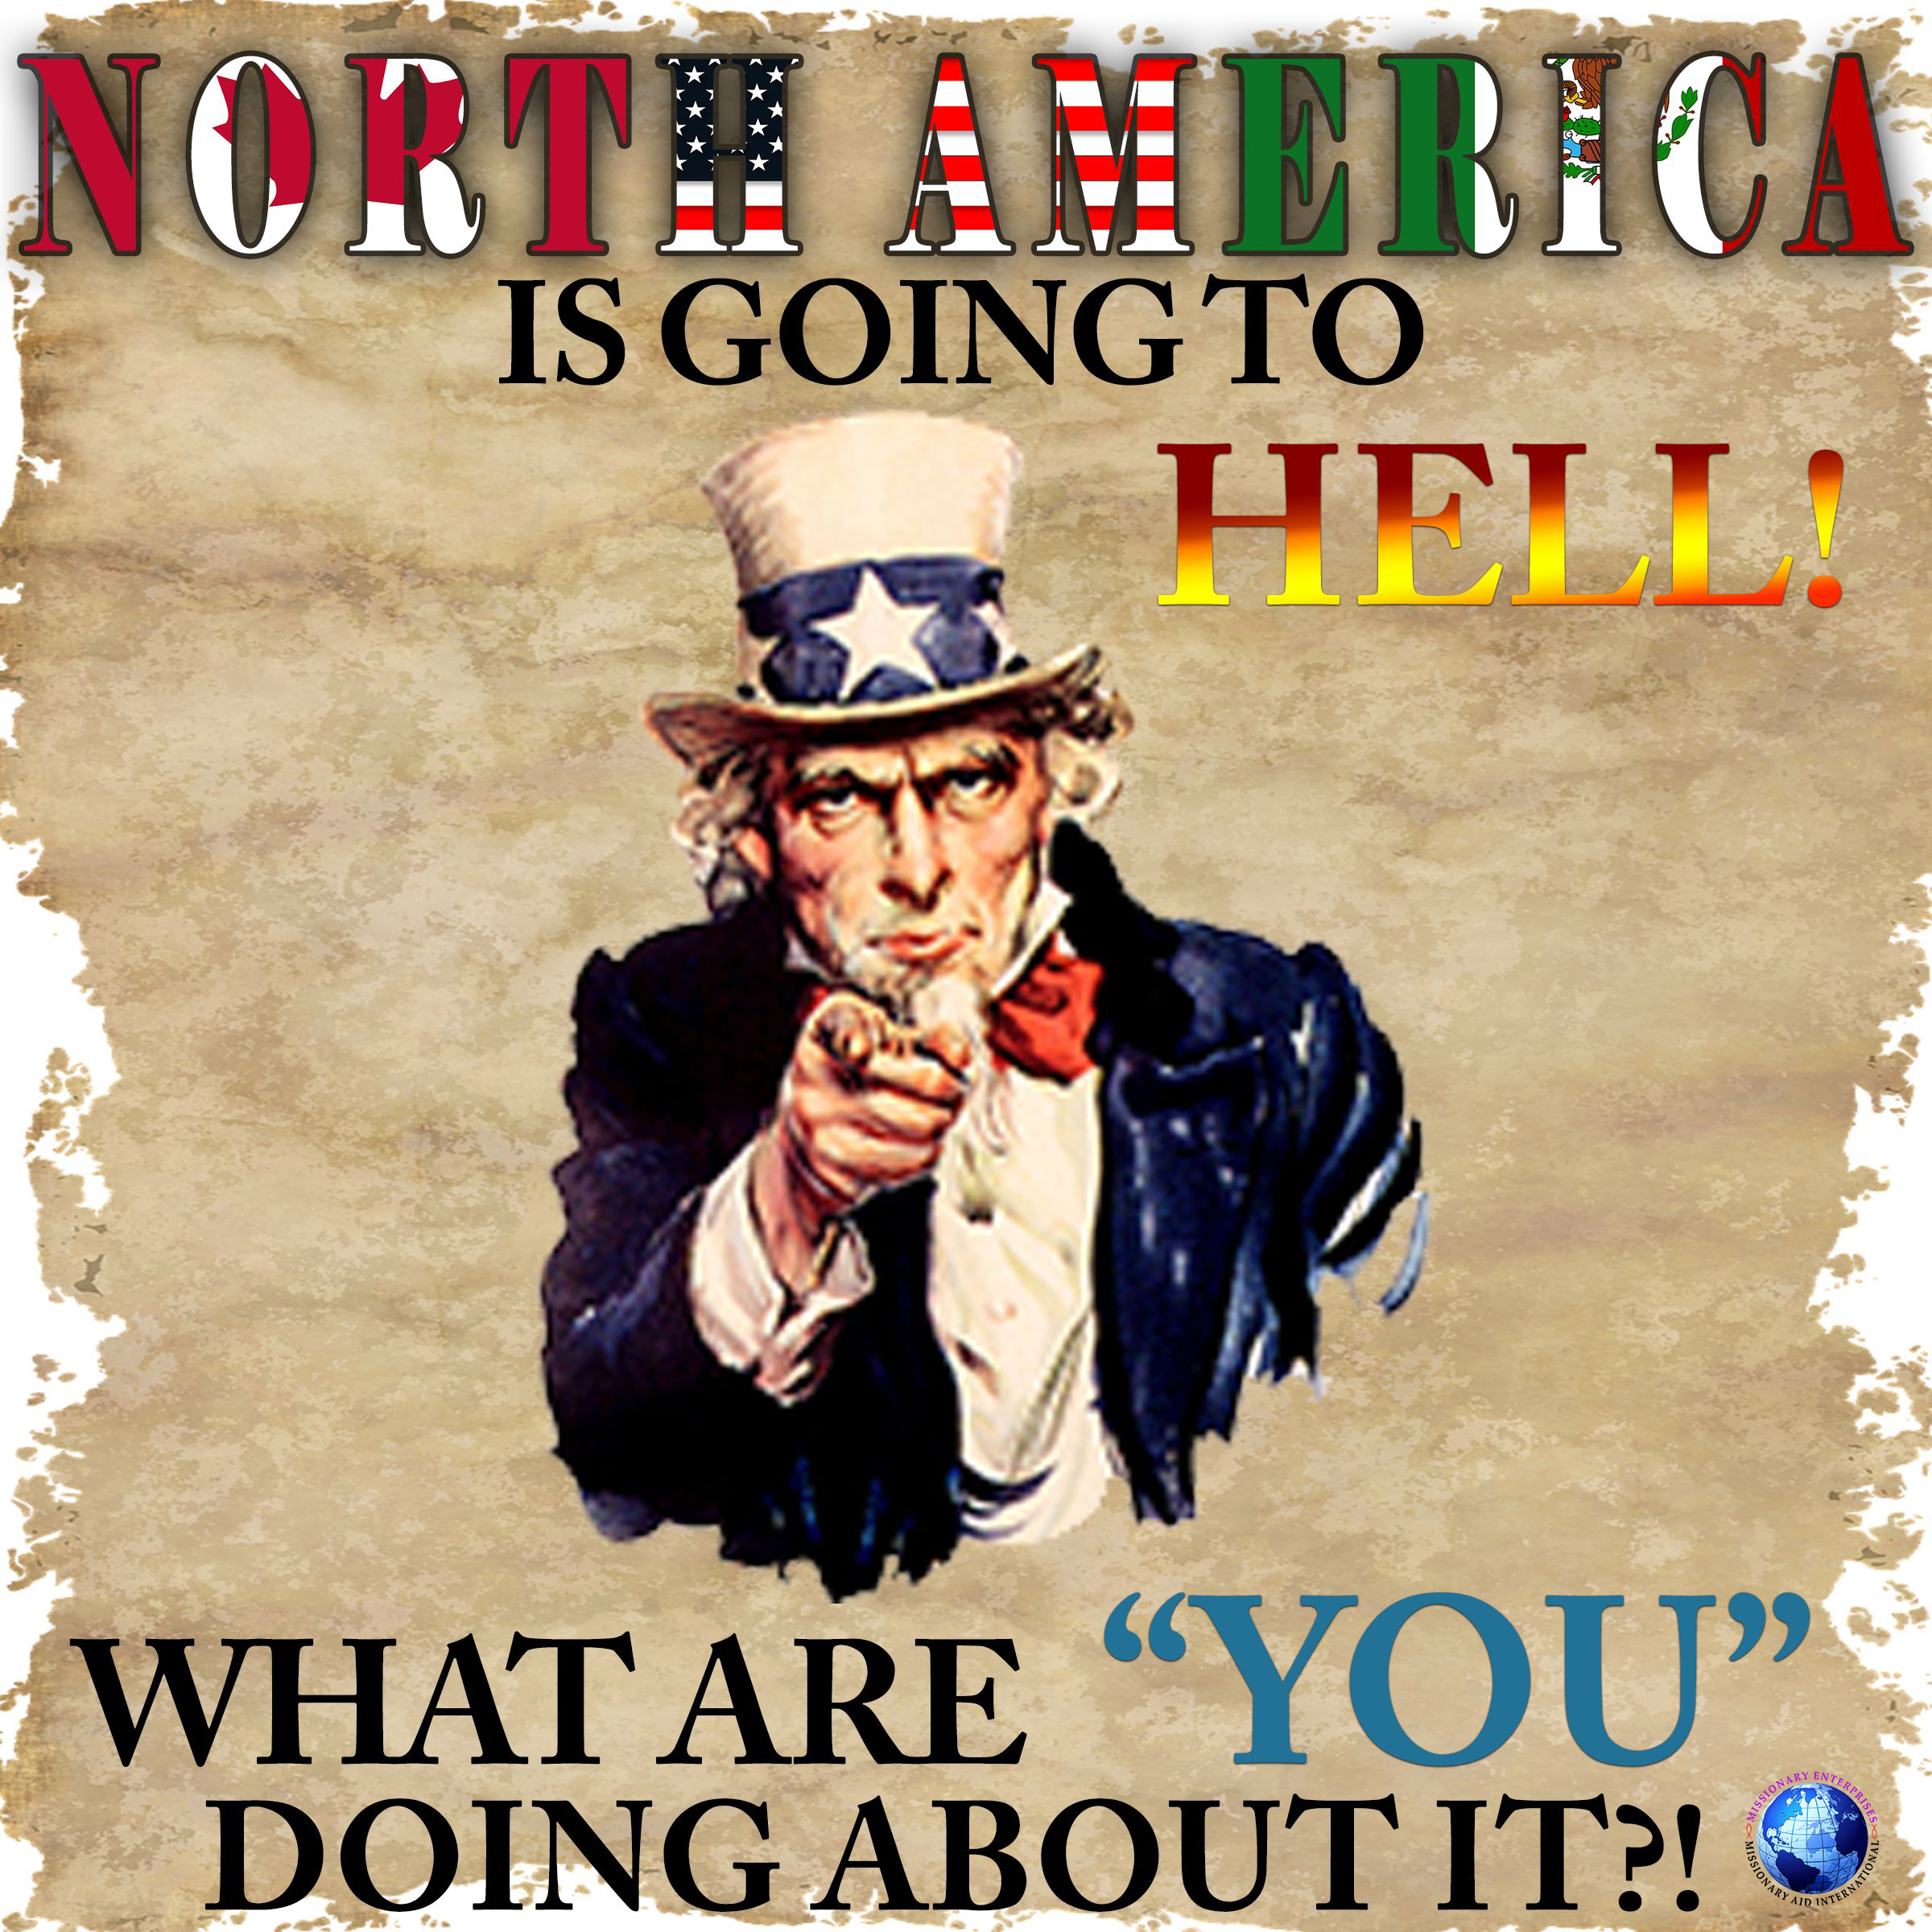 North America is going to Hell, What are you doing about it?